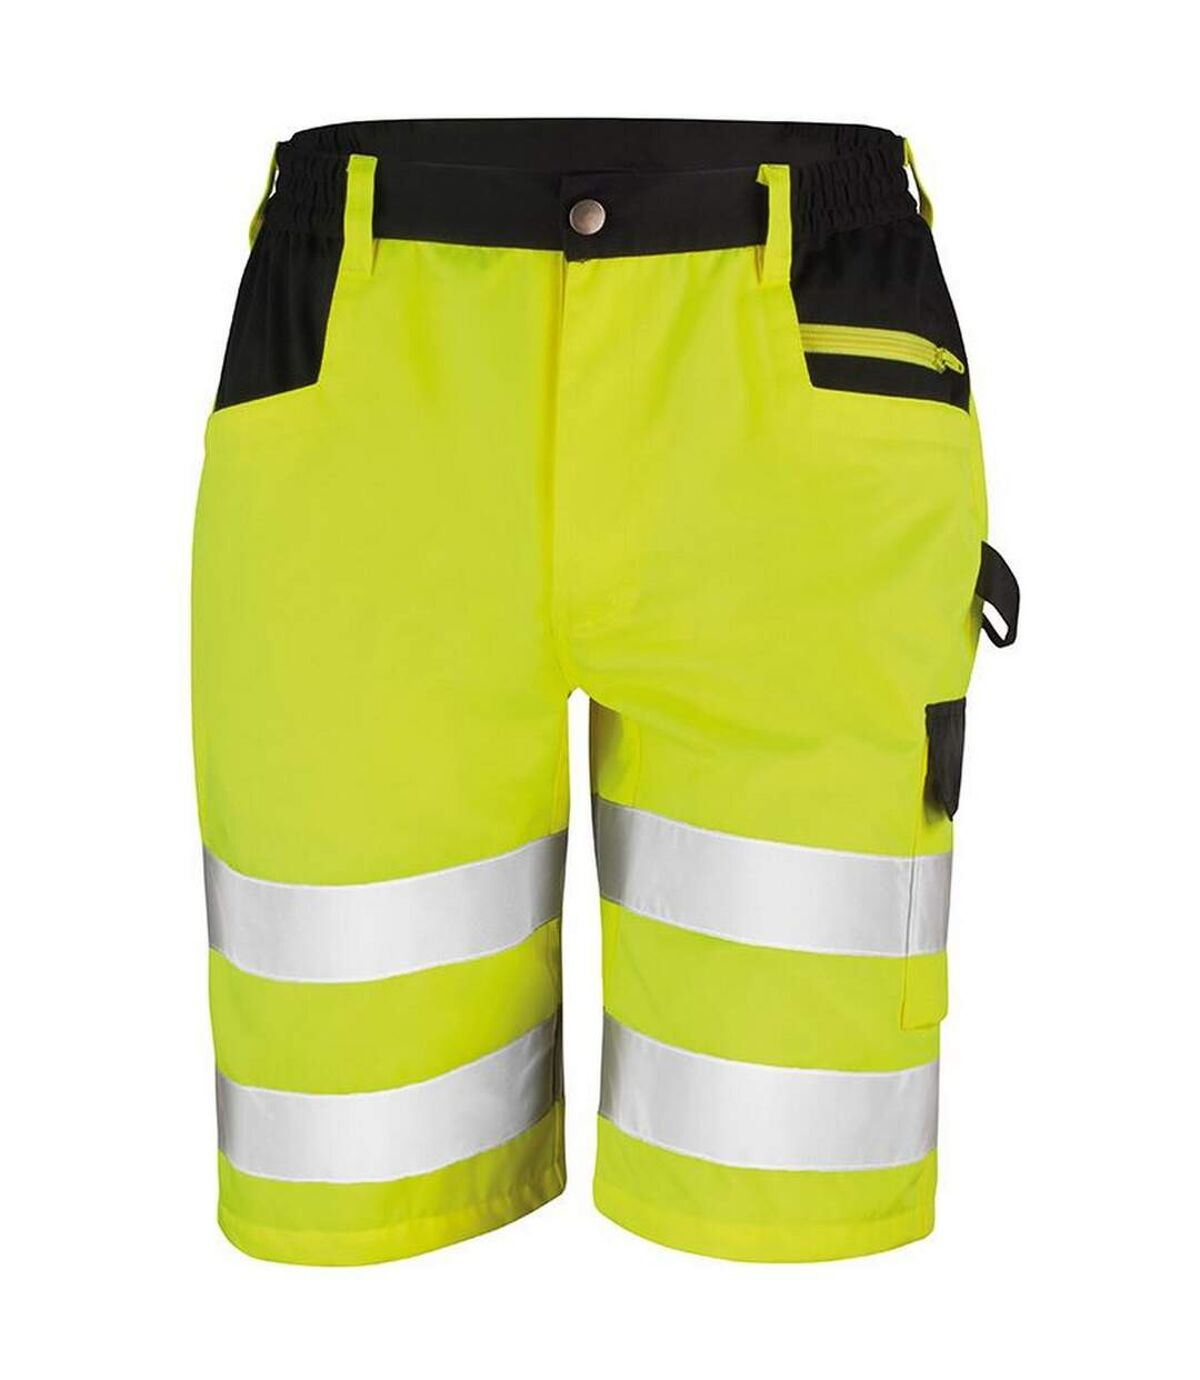 Result Core Mens Reflective Safety Cargo Shorts (Yellow) - UTRW5584